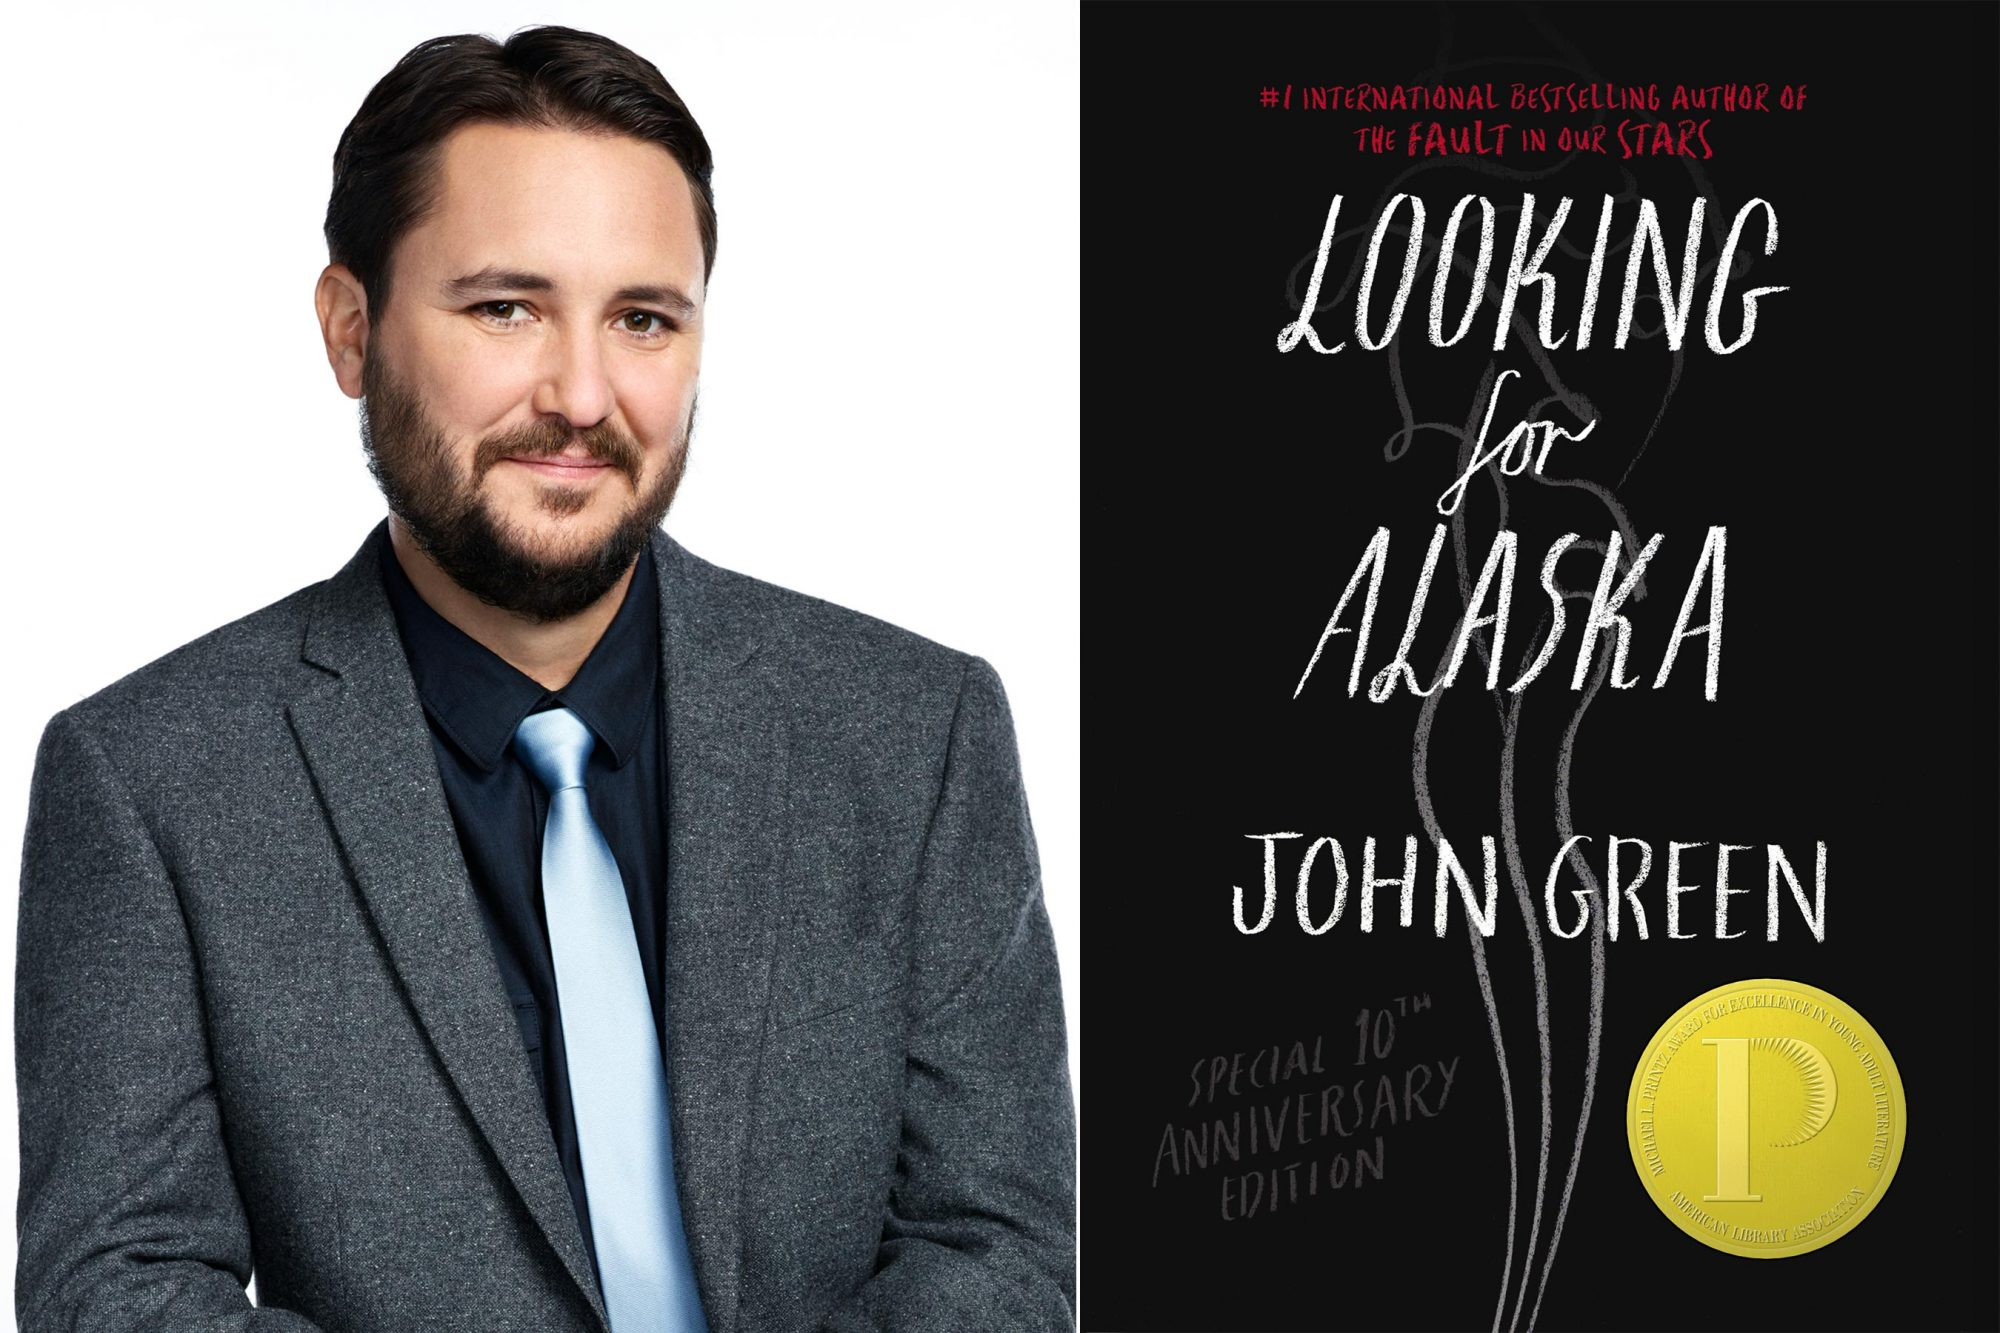 THE WIL WHEATON PROJECT -- Season:1 -- Pictured: Wil Wheaton -- (Photo by: Matt Hoover/Syfy/NBCU Photo Bank via Getty Images) Looking for Alaska by John Green CR: Penguin Random House